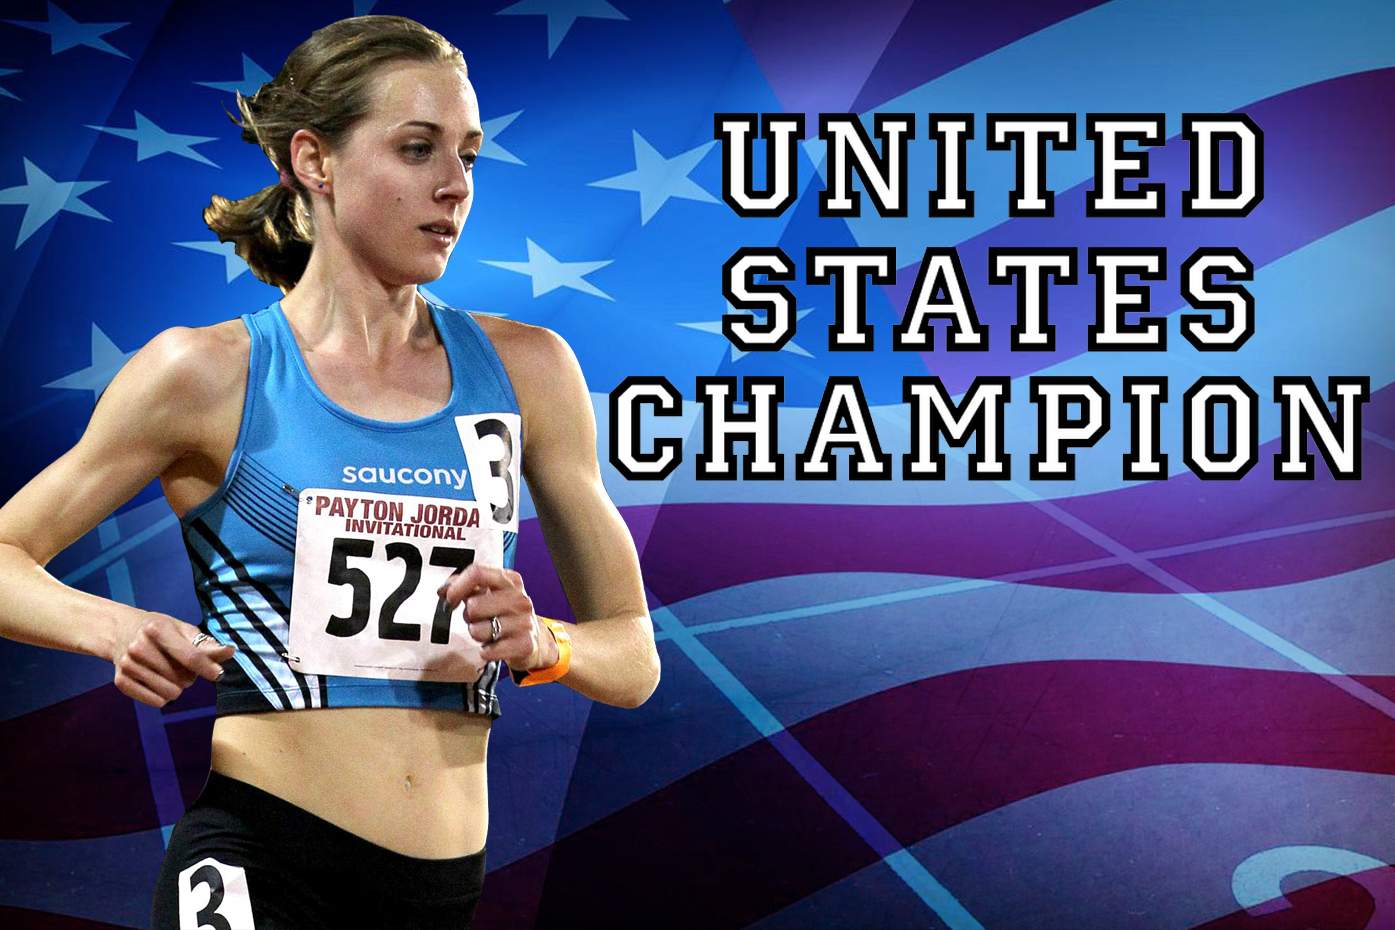 Molly Huddle US Champ_1529697205220.jpg.jpg